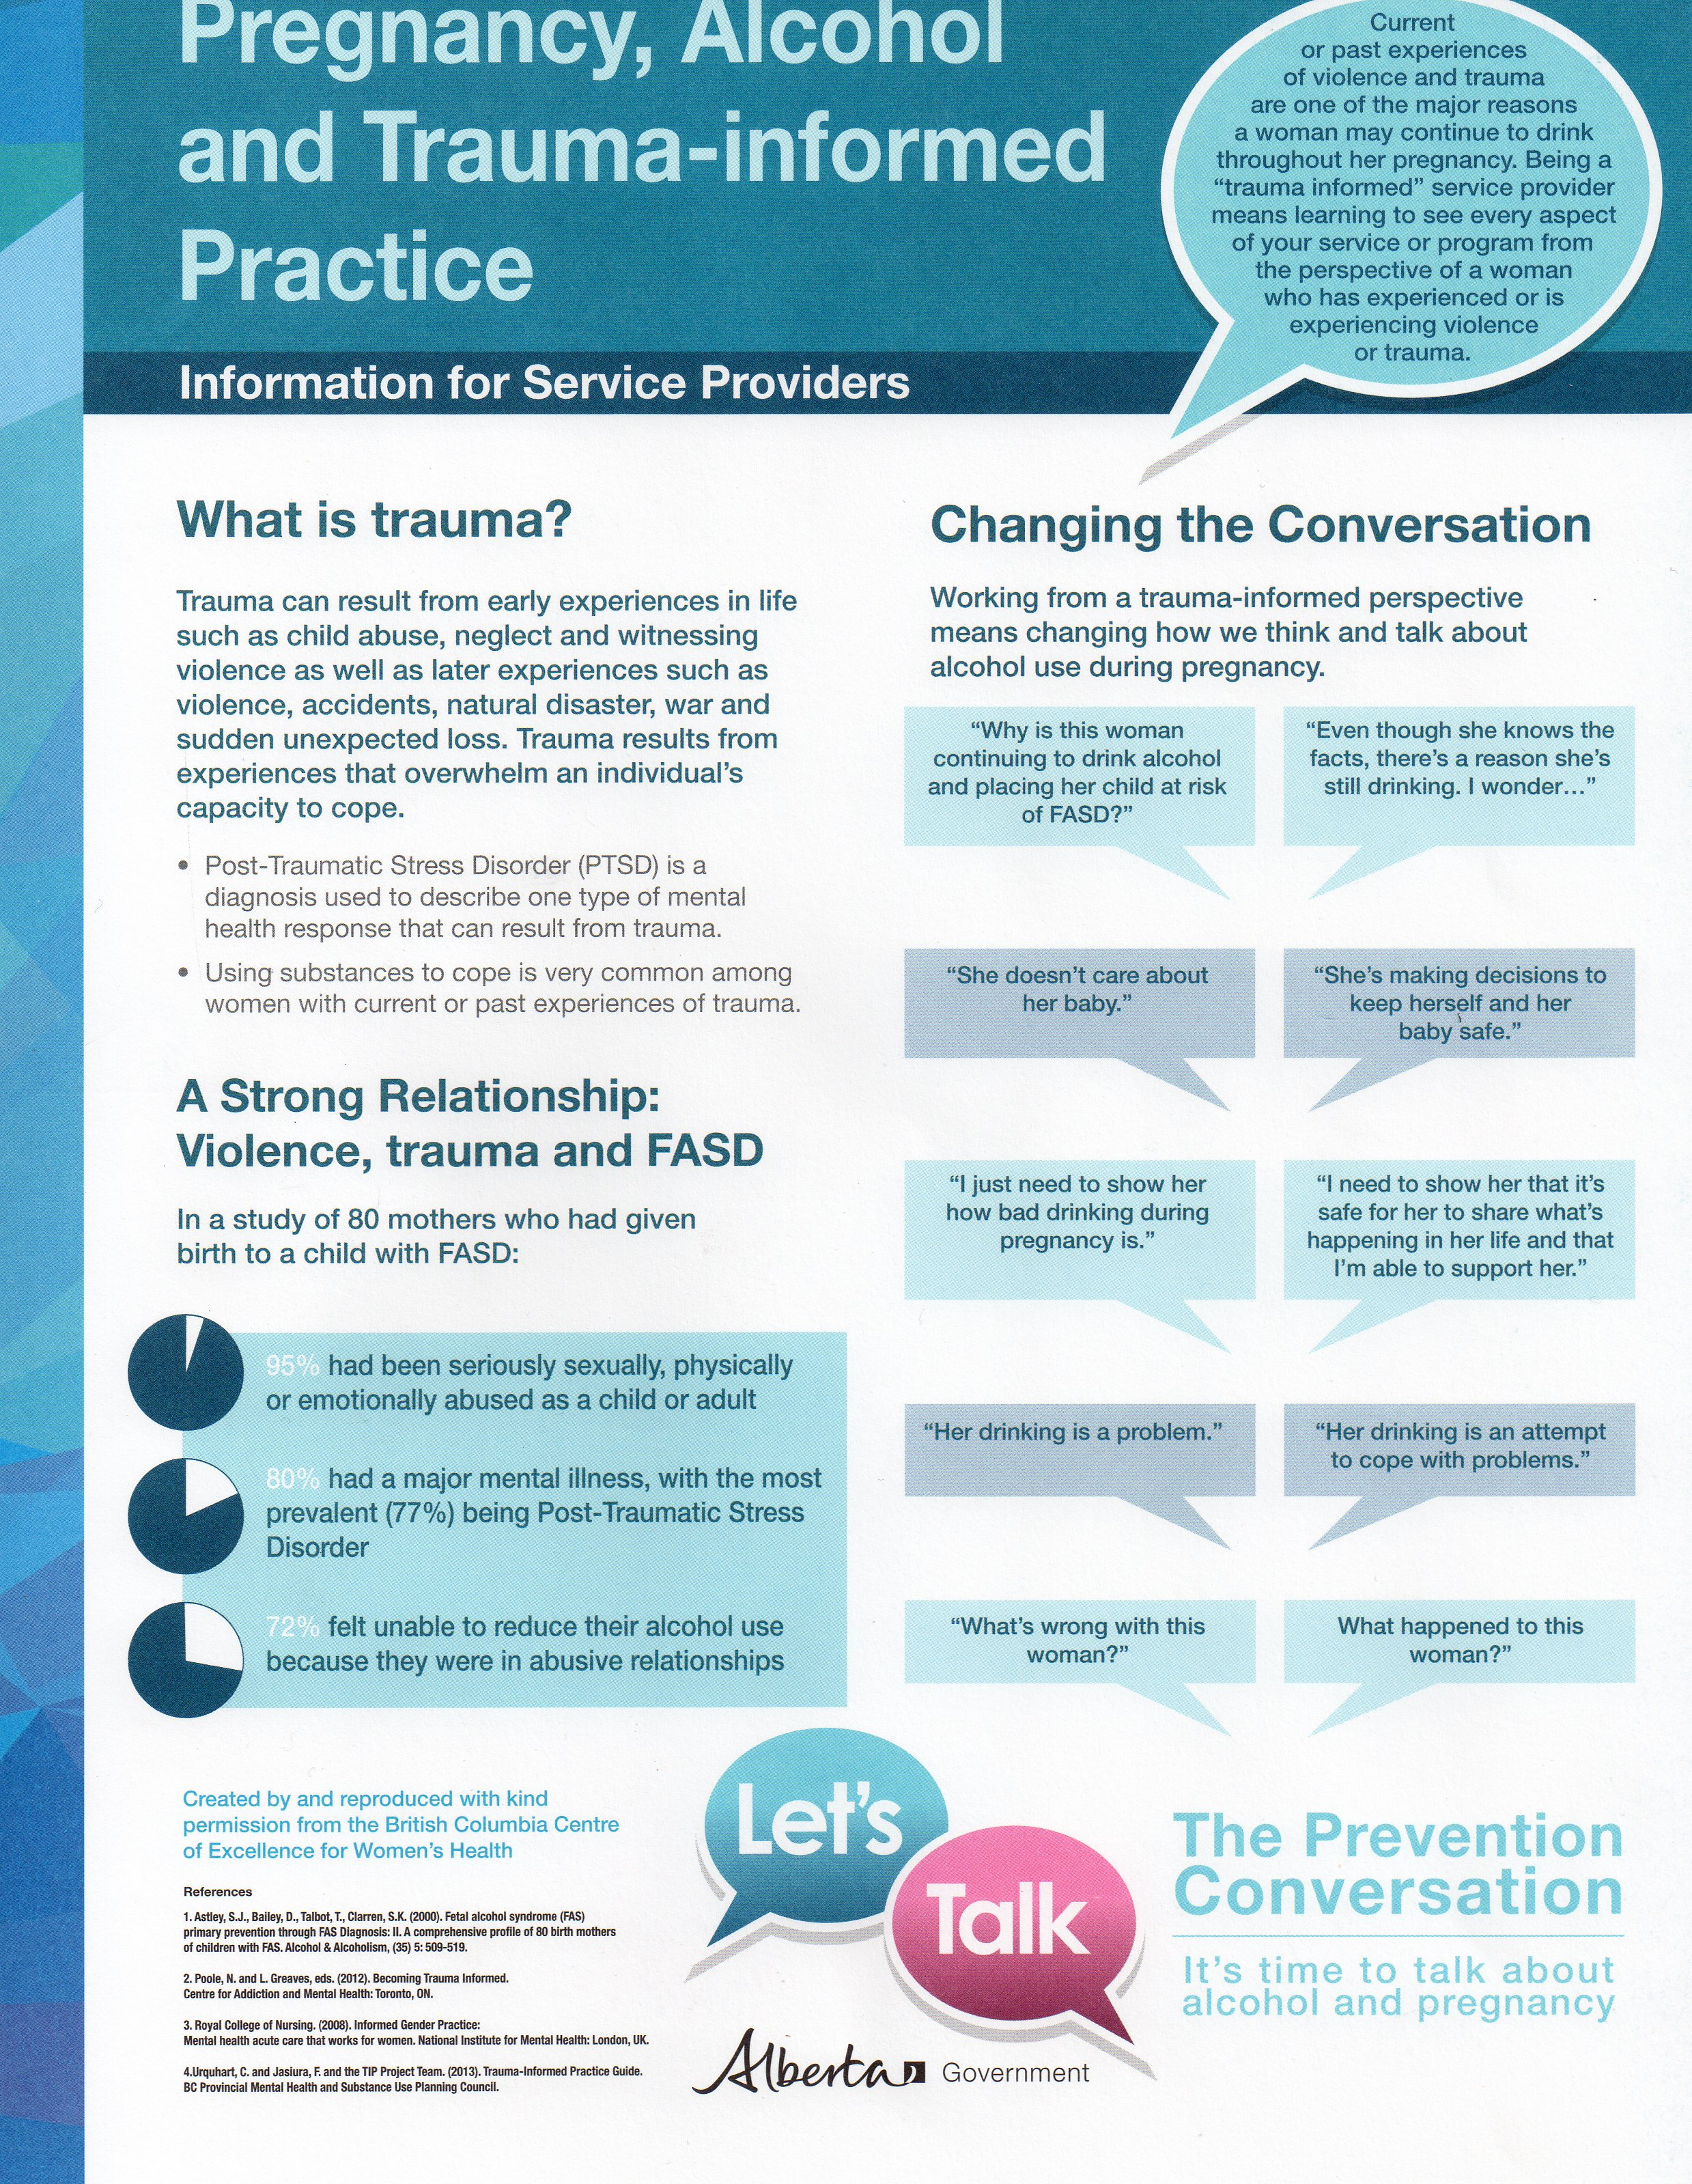 Pregnancy, Alcohol and Trauma-informed Practice